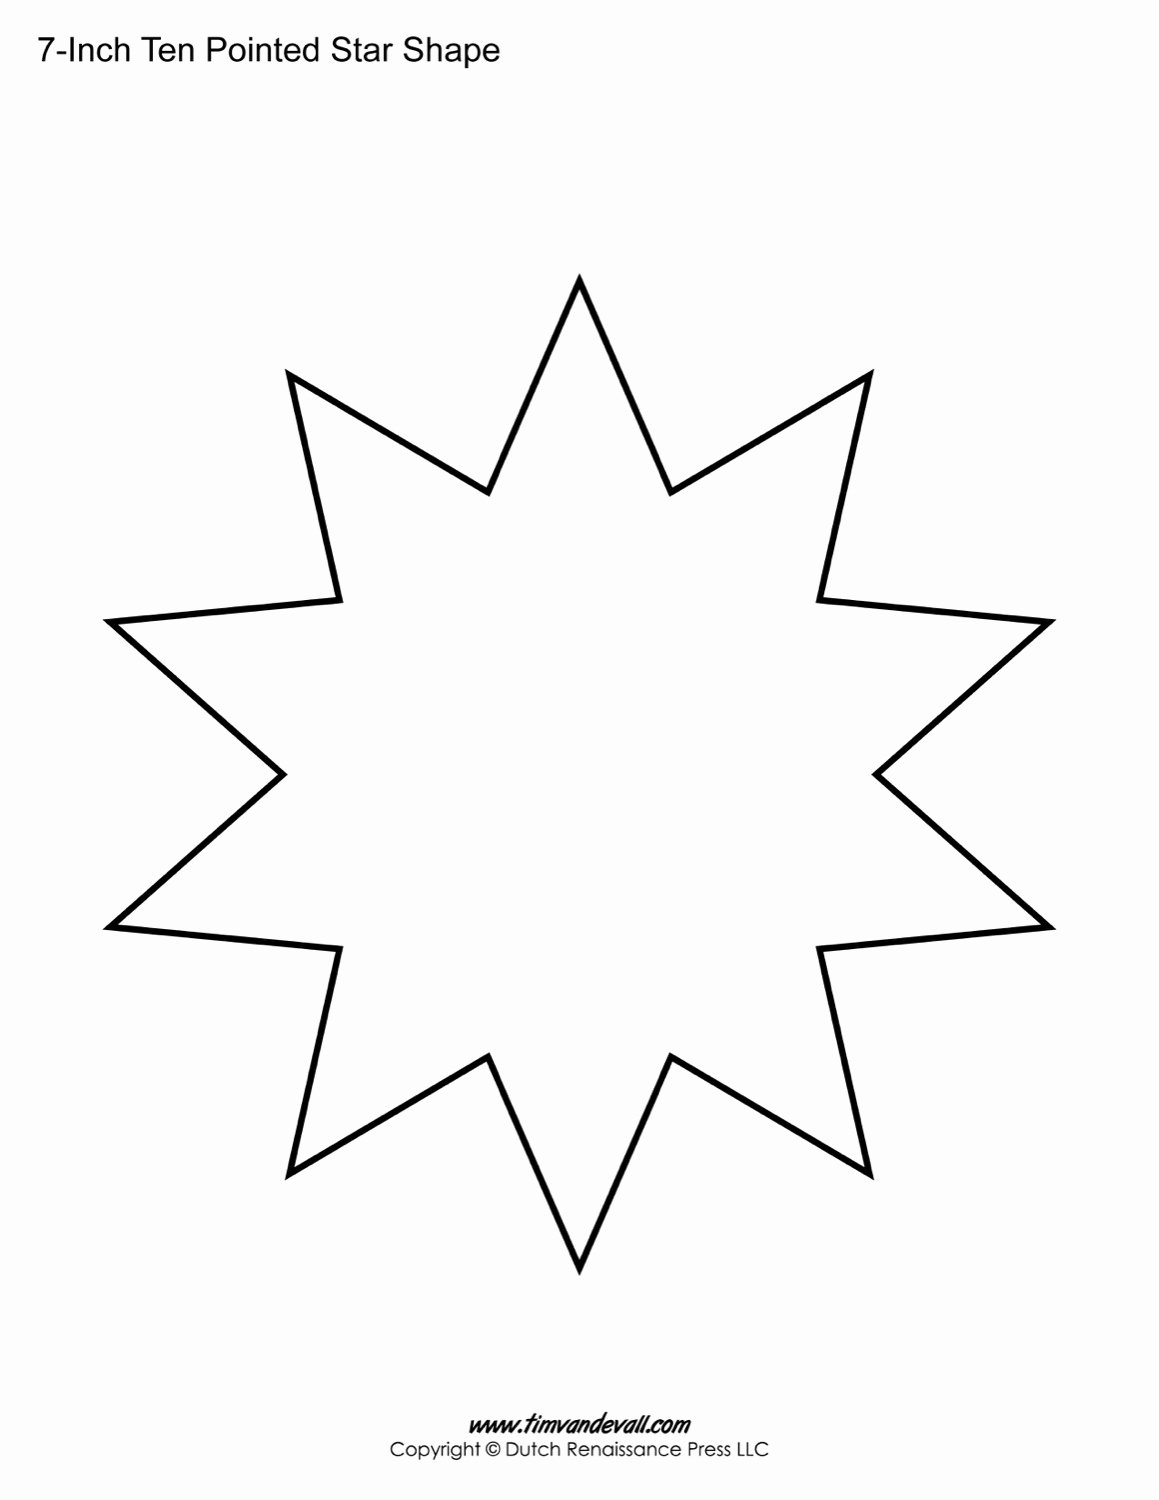 10 Inch Star Template Unique Blank Ten Pointed Star Shapes